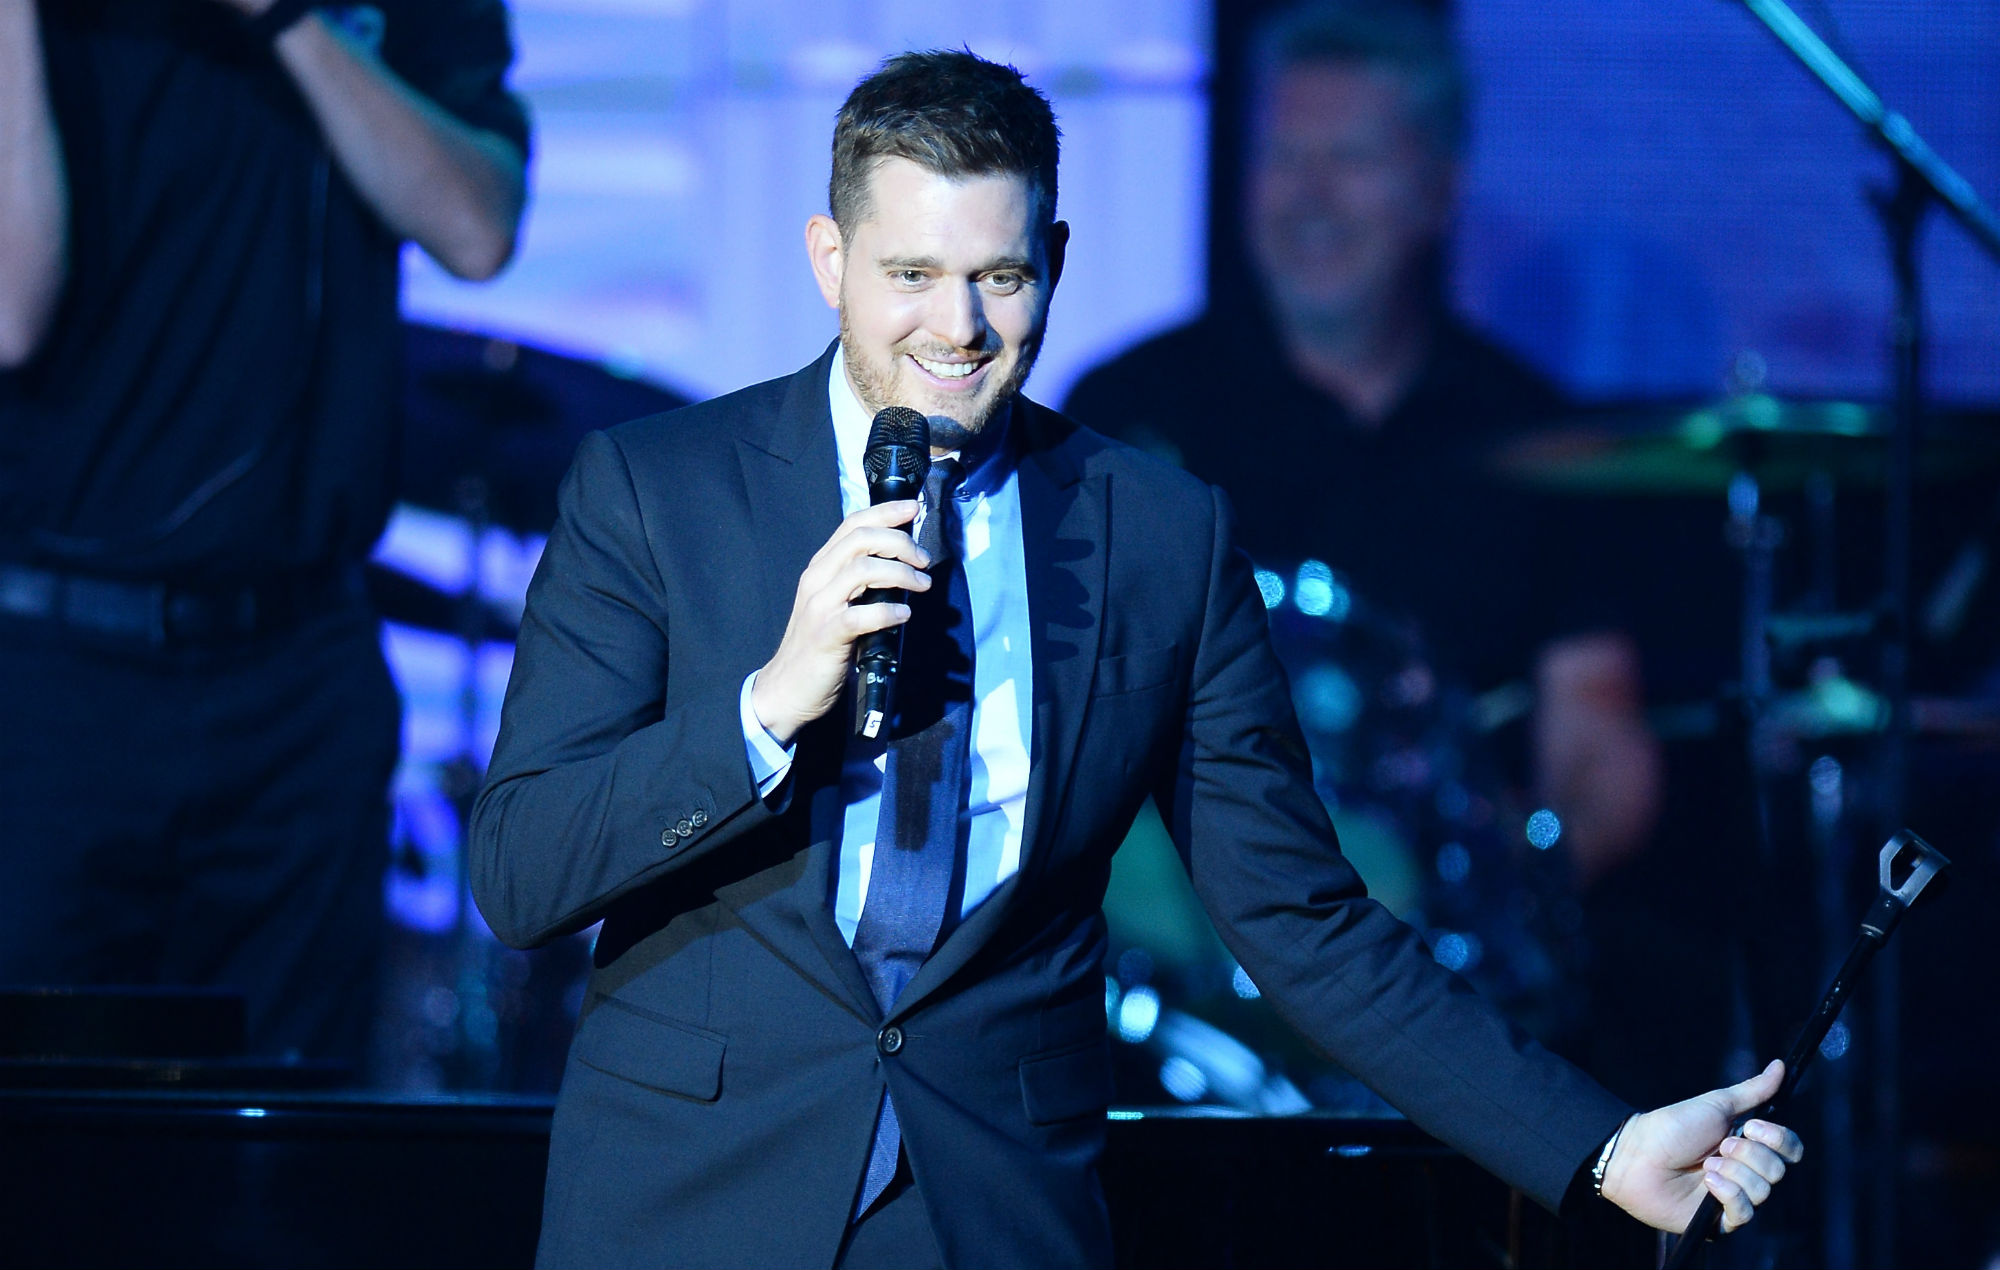 Nme Festival Blog Michael Bublé Says He Is Quitting Music After His